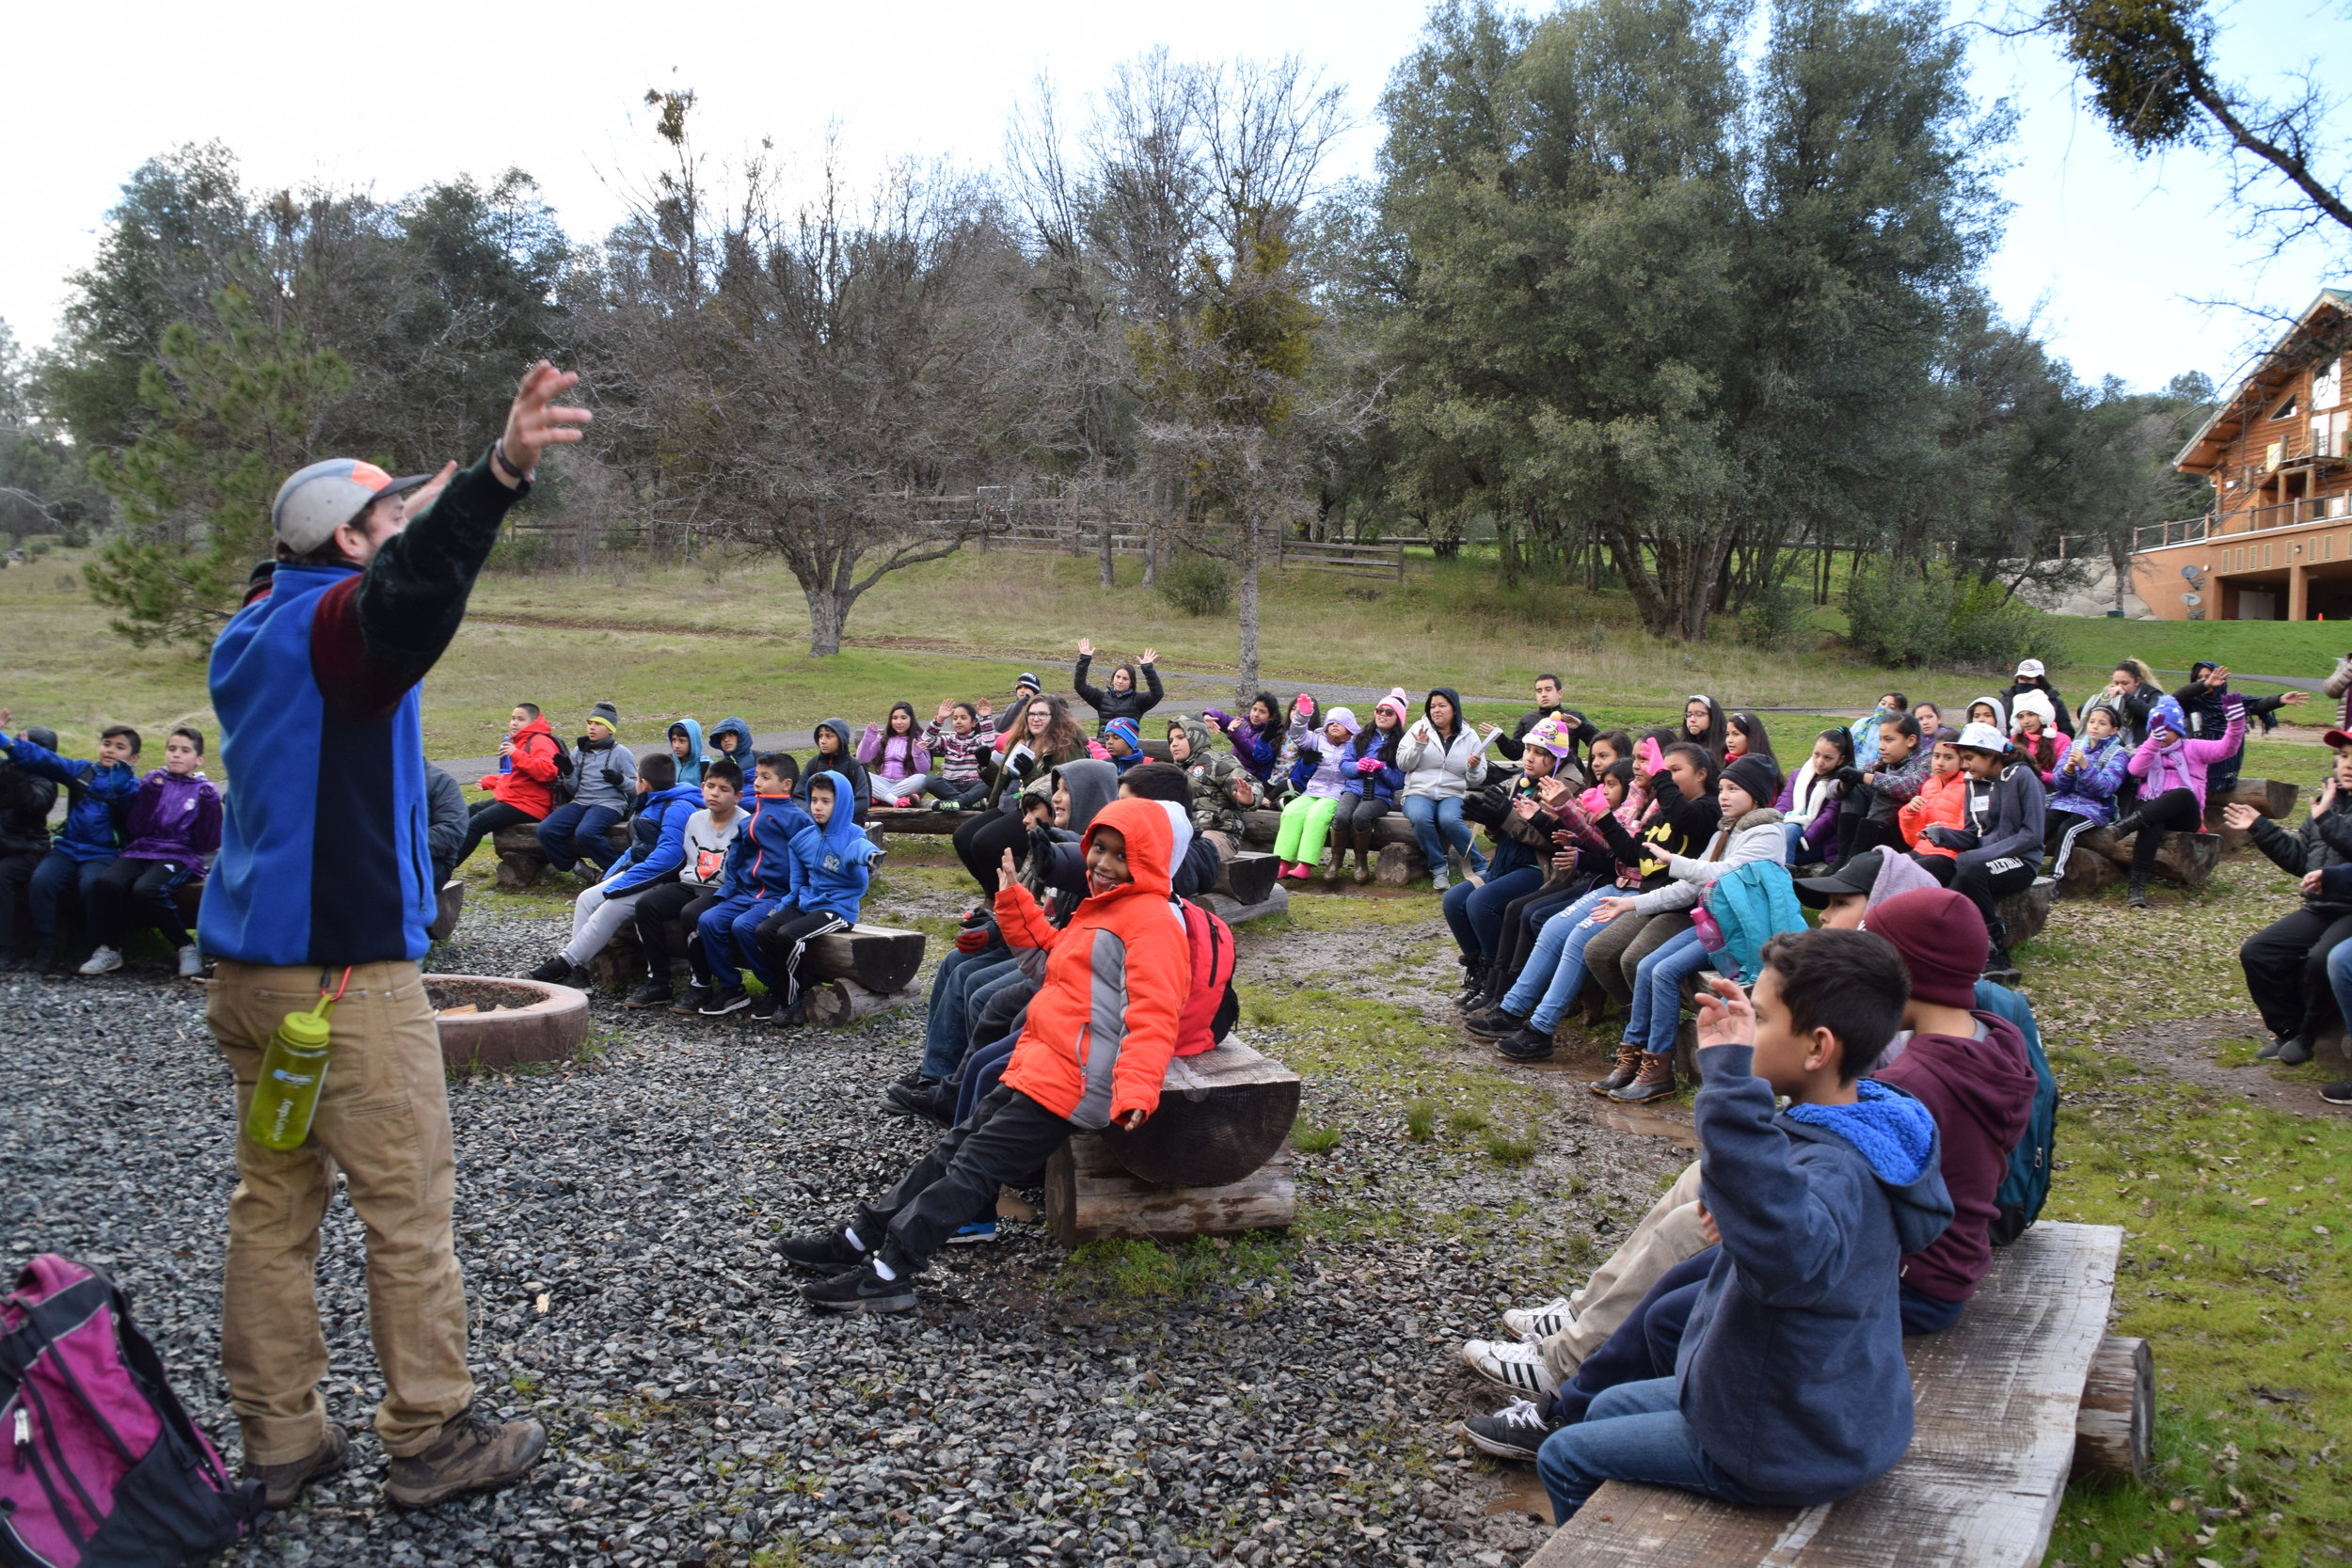 Rocketship Bay Area students attend WOLF School's Outdoor Science School program at Camp Tuolumne Trails, located just outside of Yosemite National Park.